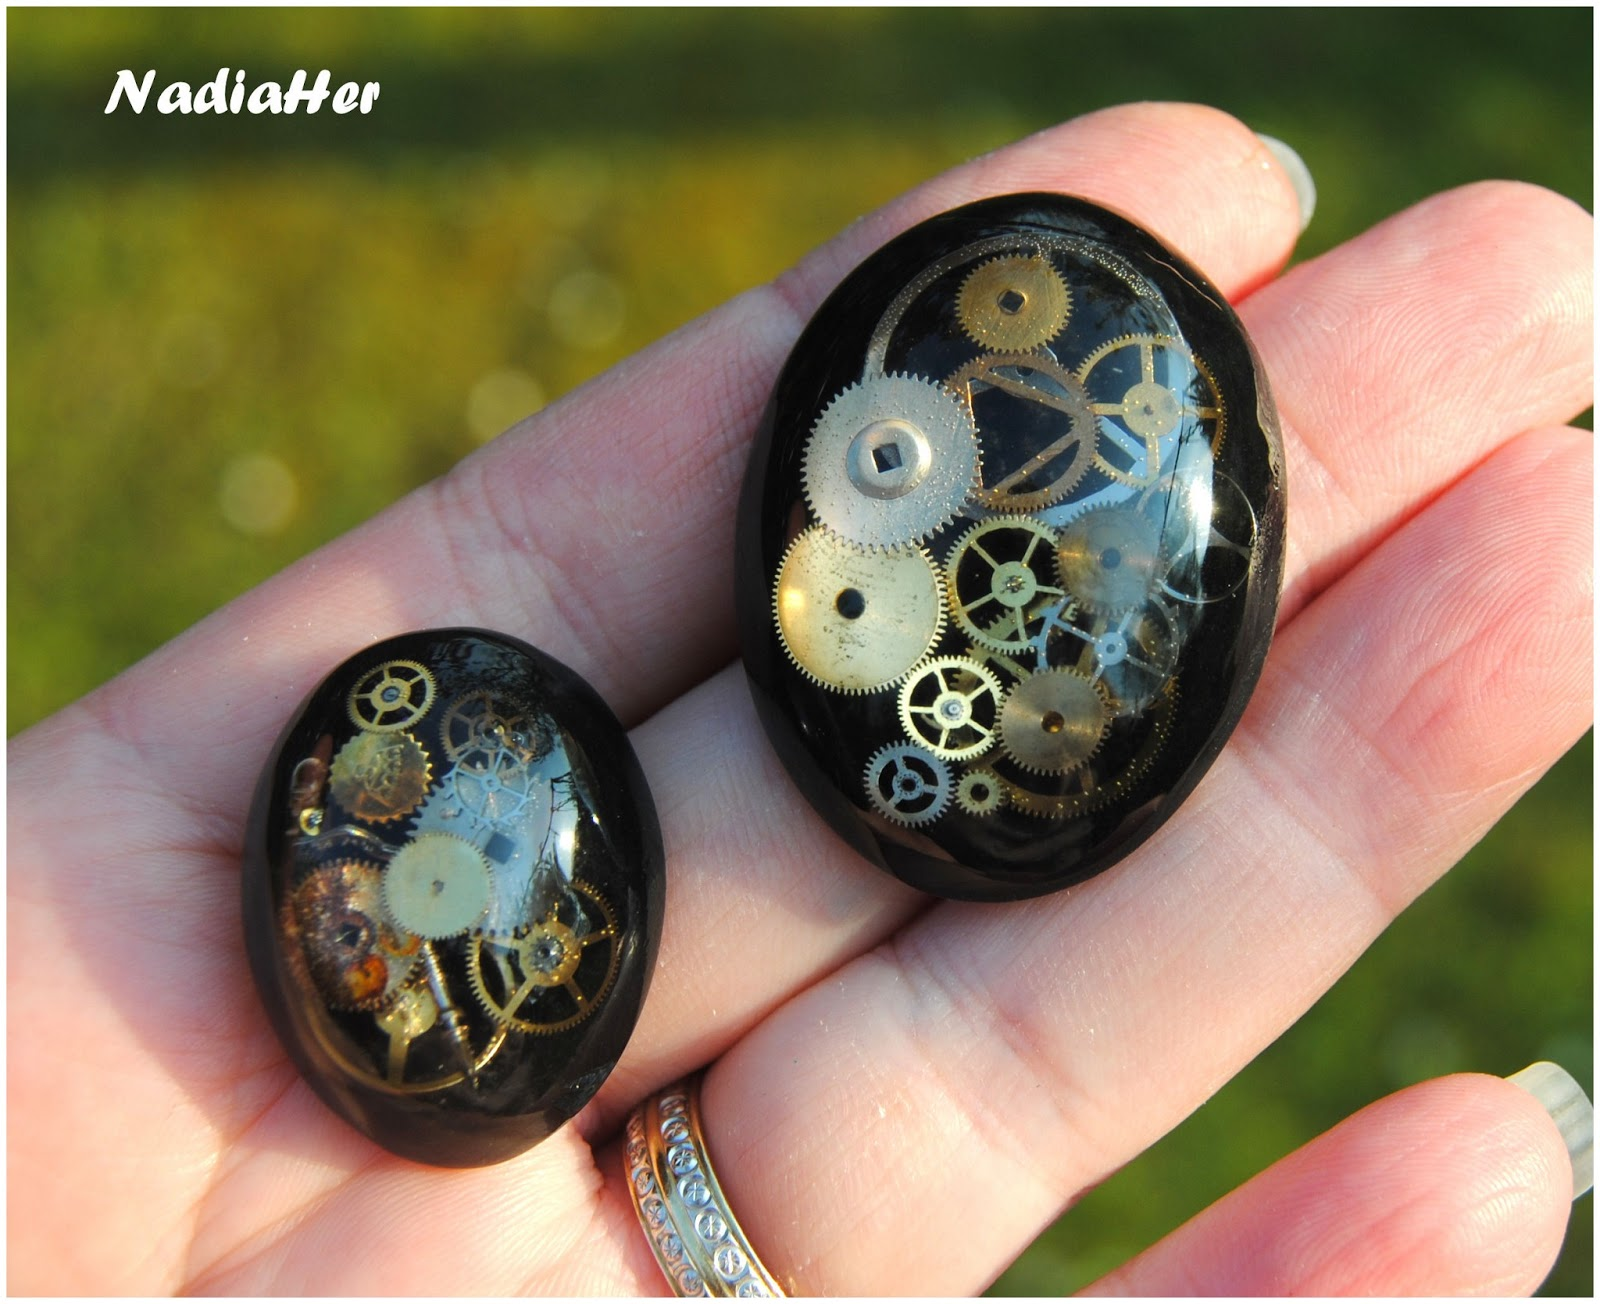 les bijoux de nadia cabochons en r sine epoxy style steampunk et tutoriel pour r aliser un. Black Bedroom Furniture Sets. Home Design Ideas